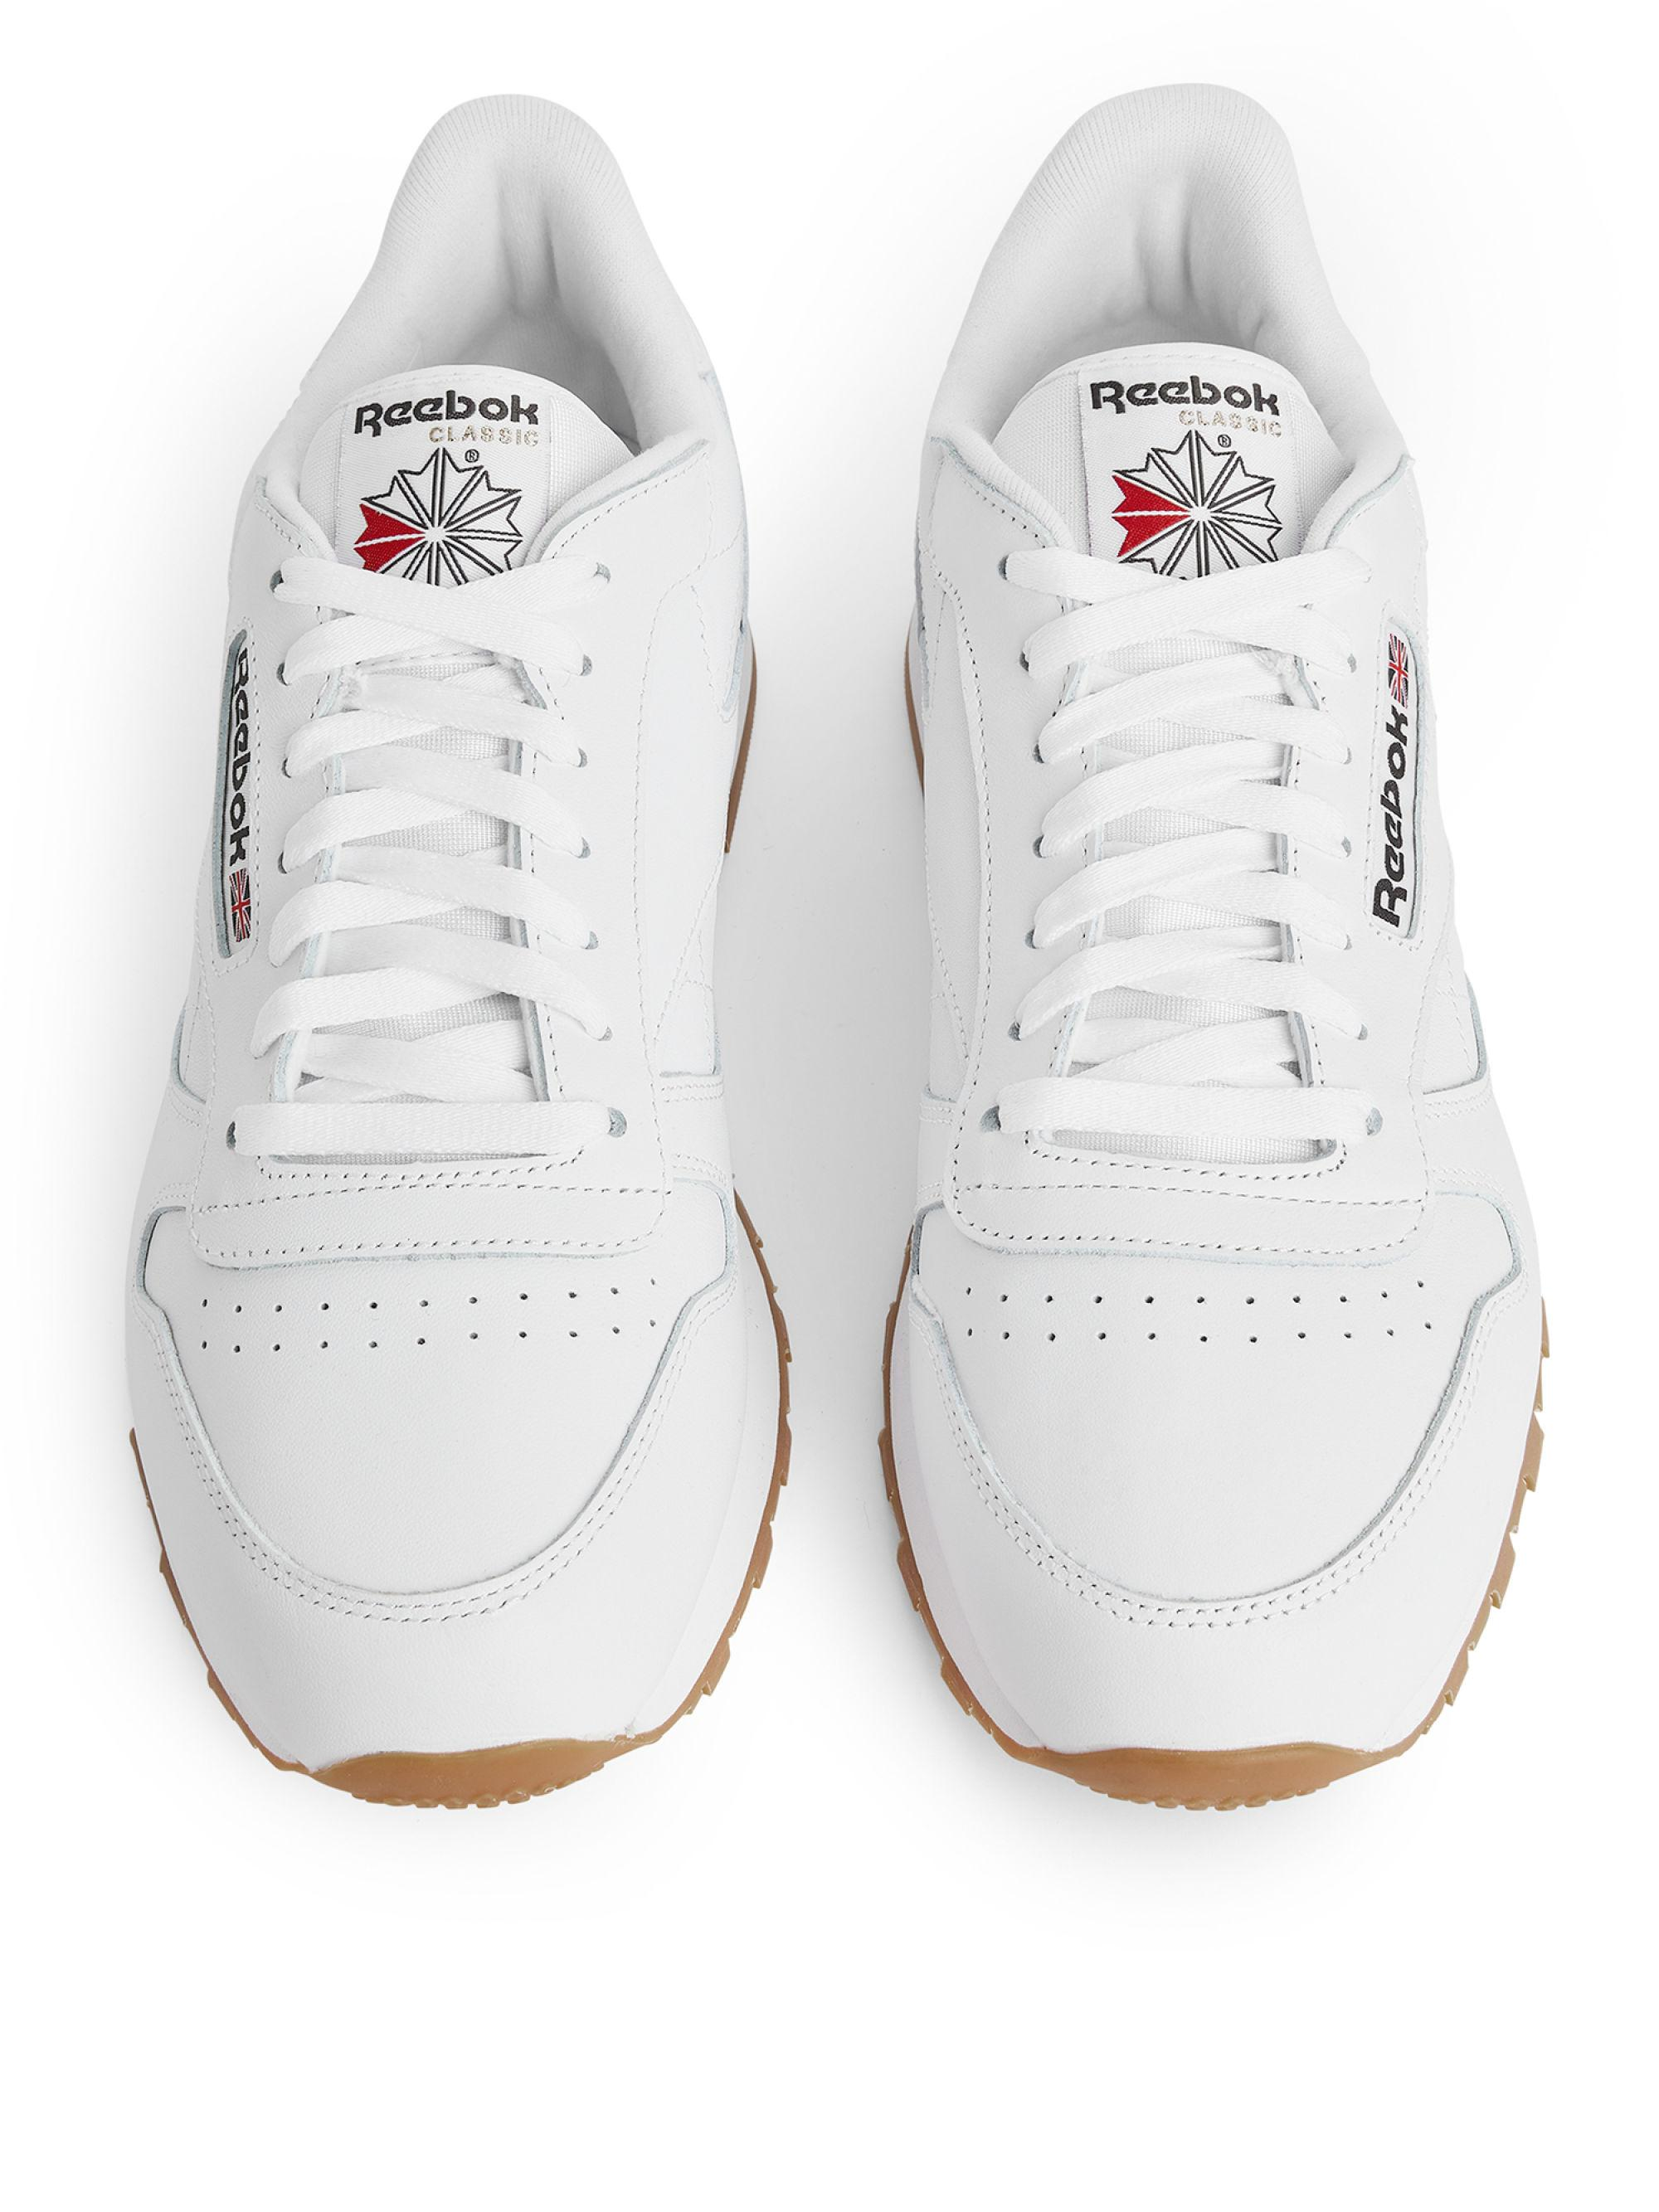 cfd8faa0754 Reebok Classic Leather in White for Men - Lyst